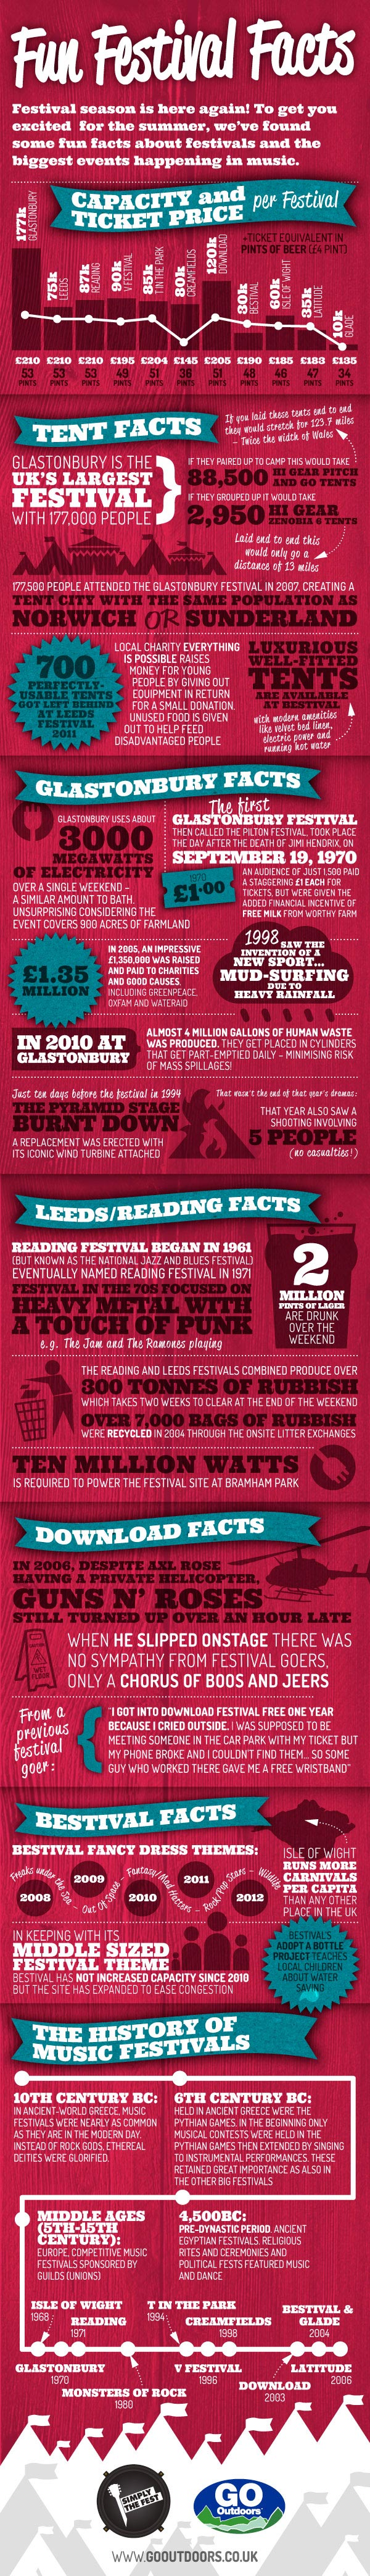 UK Festival Highlights-Infographic